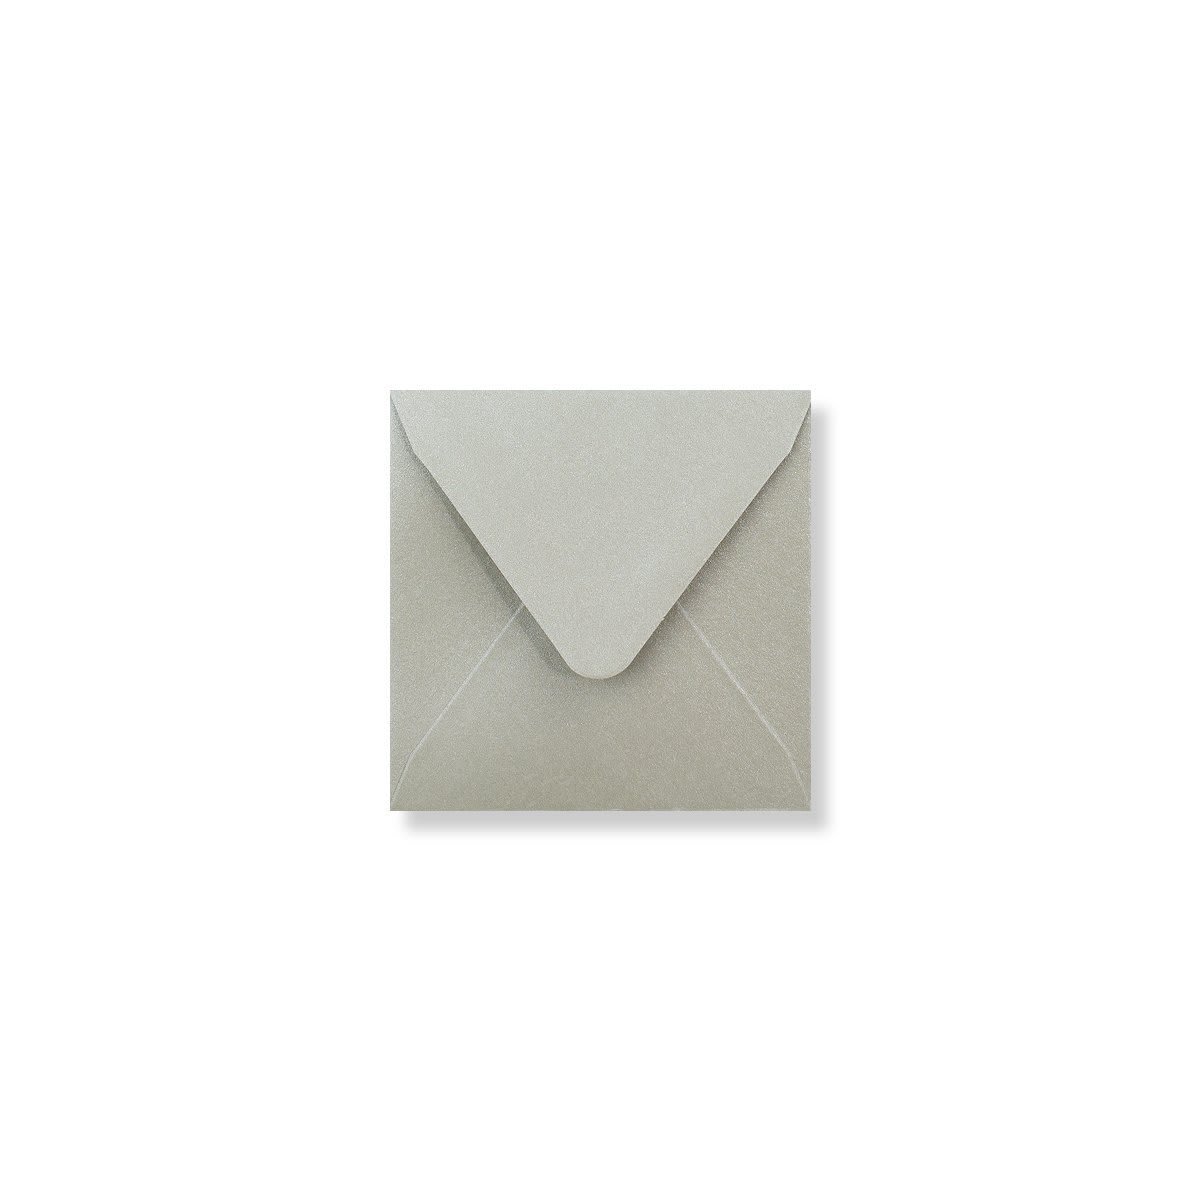 80 x 80 MM SILVER PEARLESCENT ENVELOPES